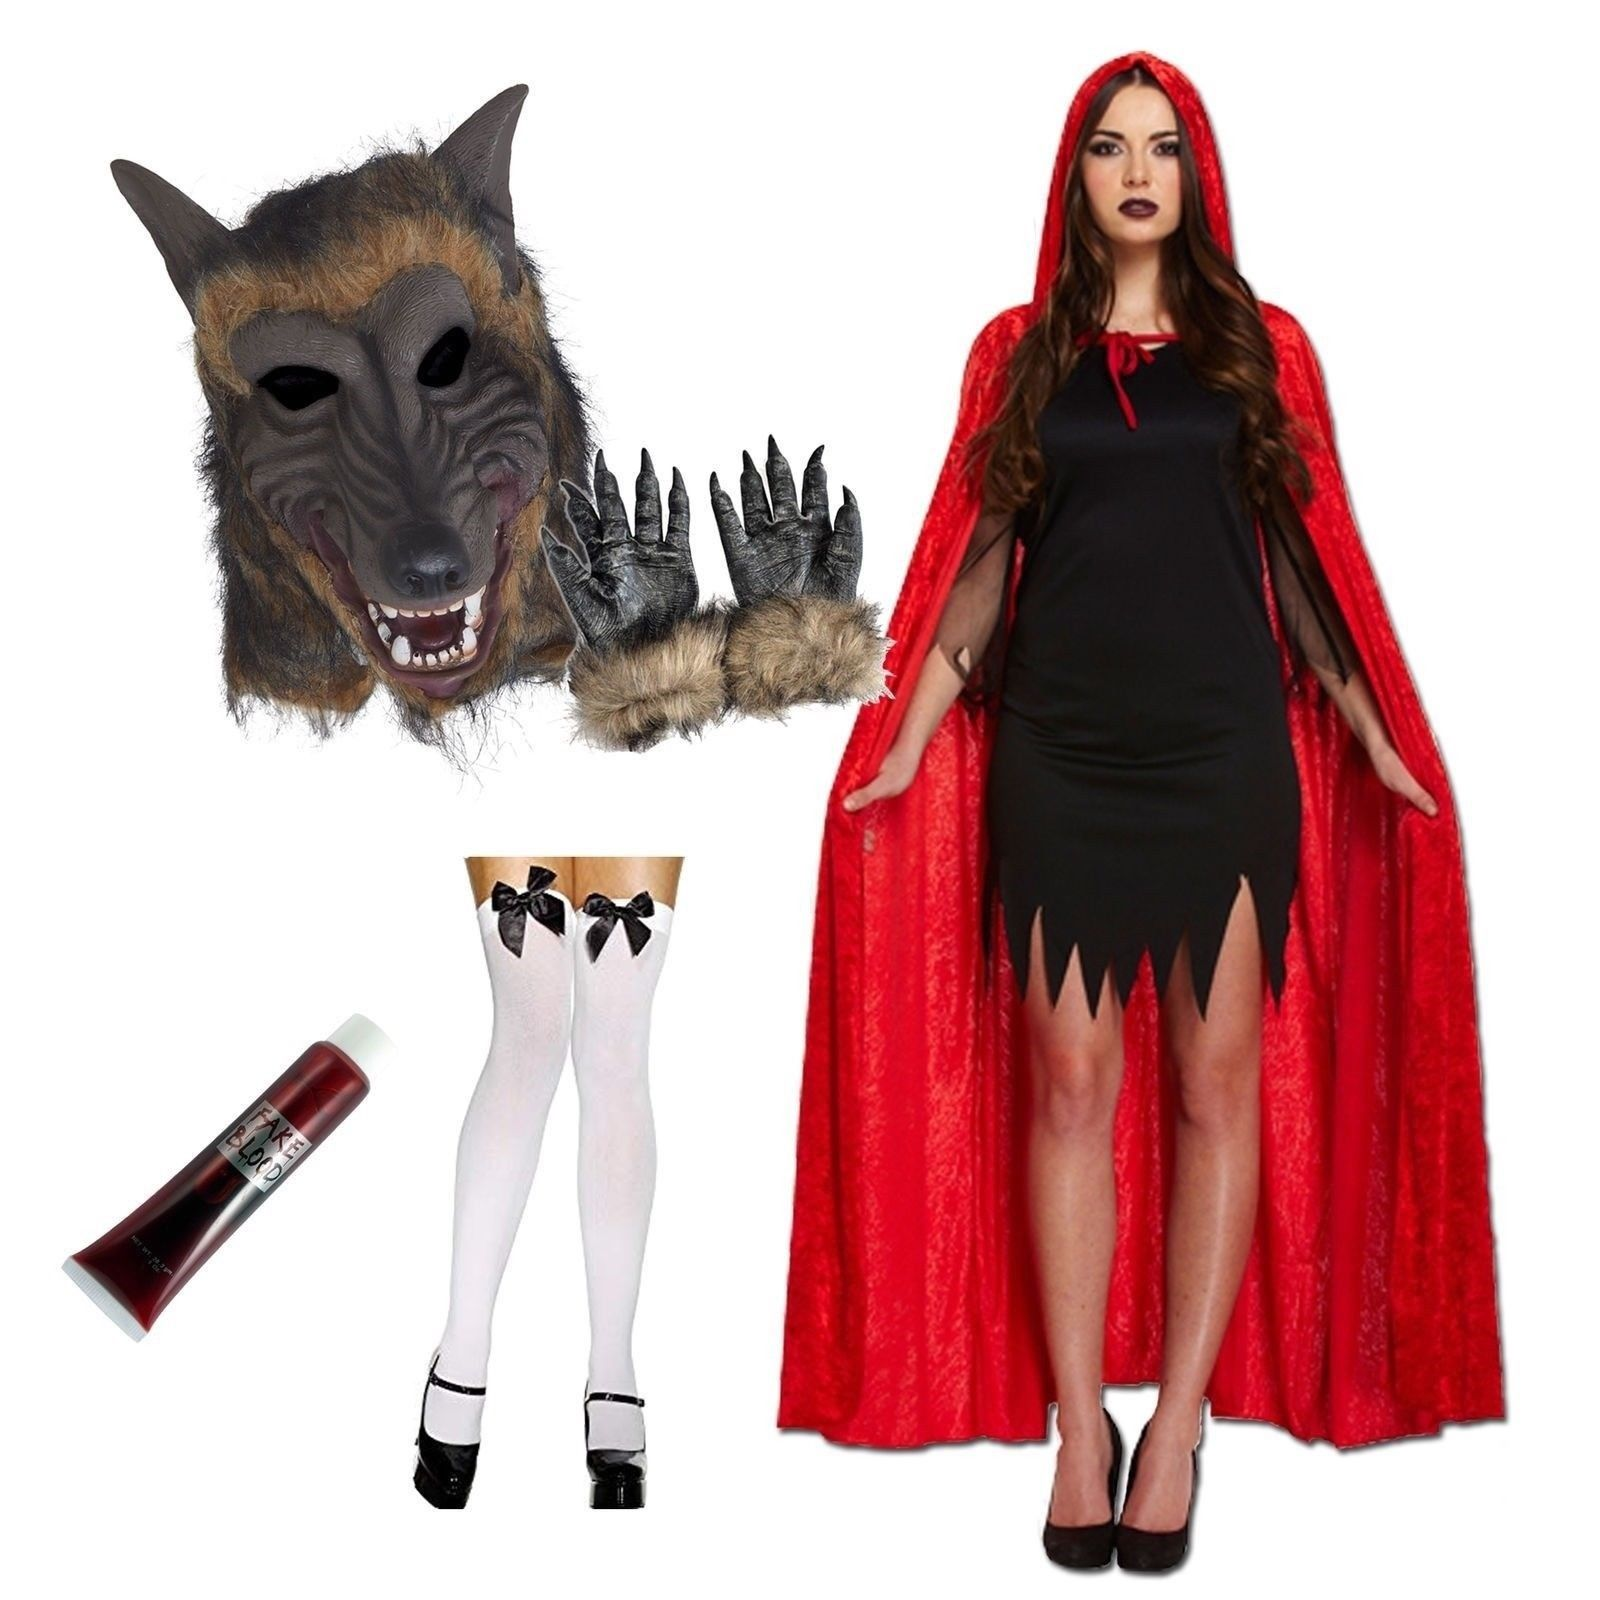 de19738a4cd Details about Red Riding Hood and Wolf Couple Costume Halloween Werewolf  Mask Cape Fancy Dress